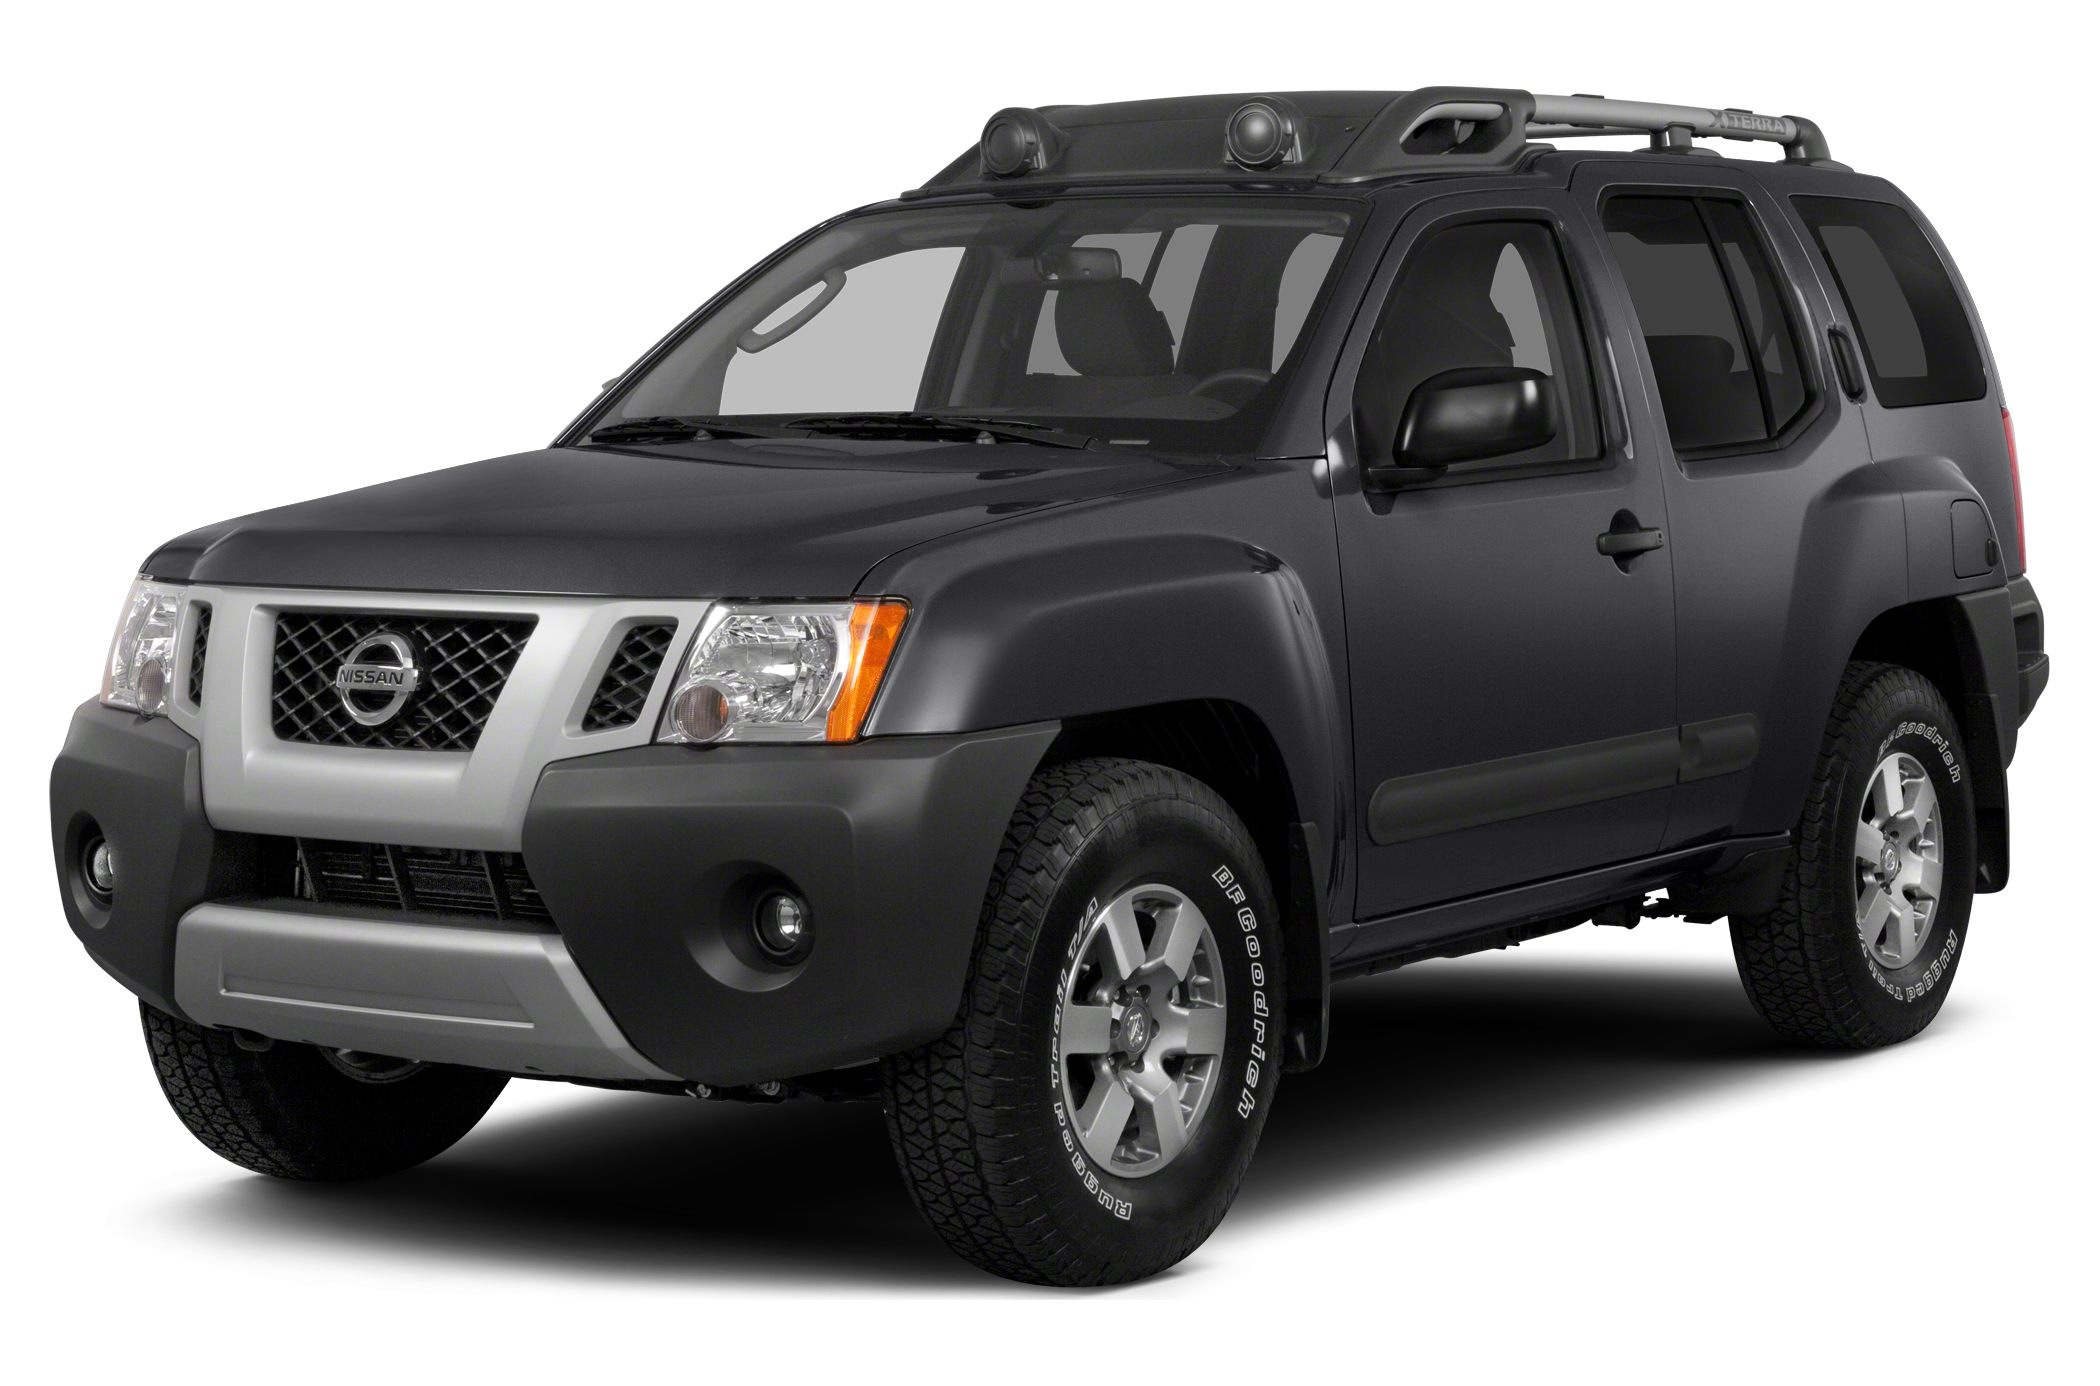 2015 Nissan Xterra PRO-4X SUV for sale in Walnut Creek for $32,660 with 0 miles.